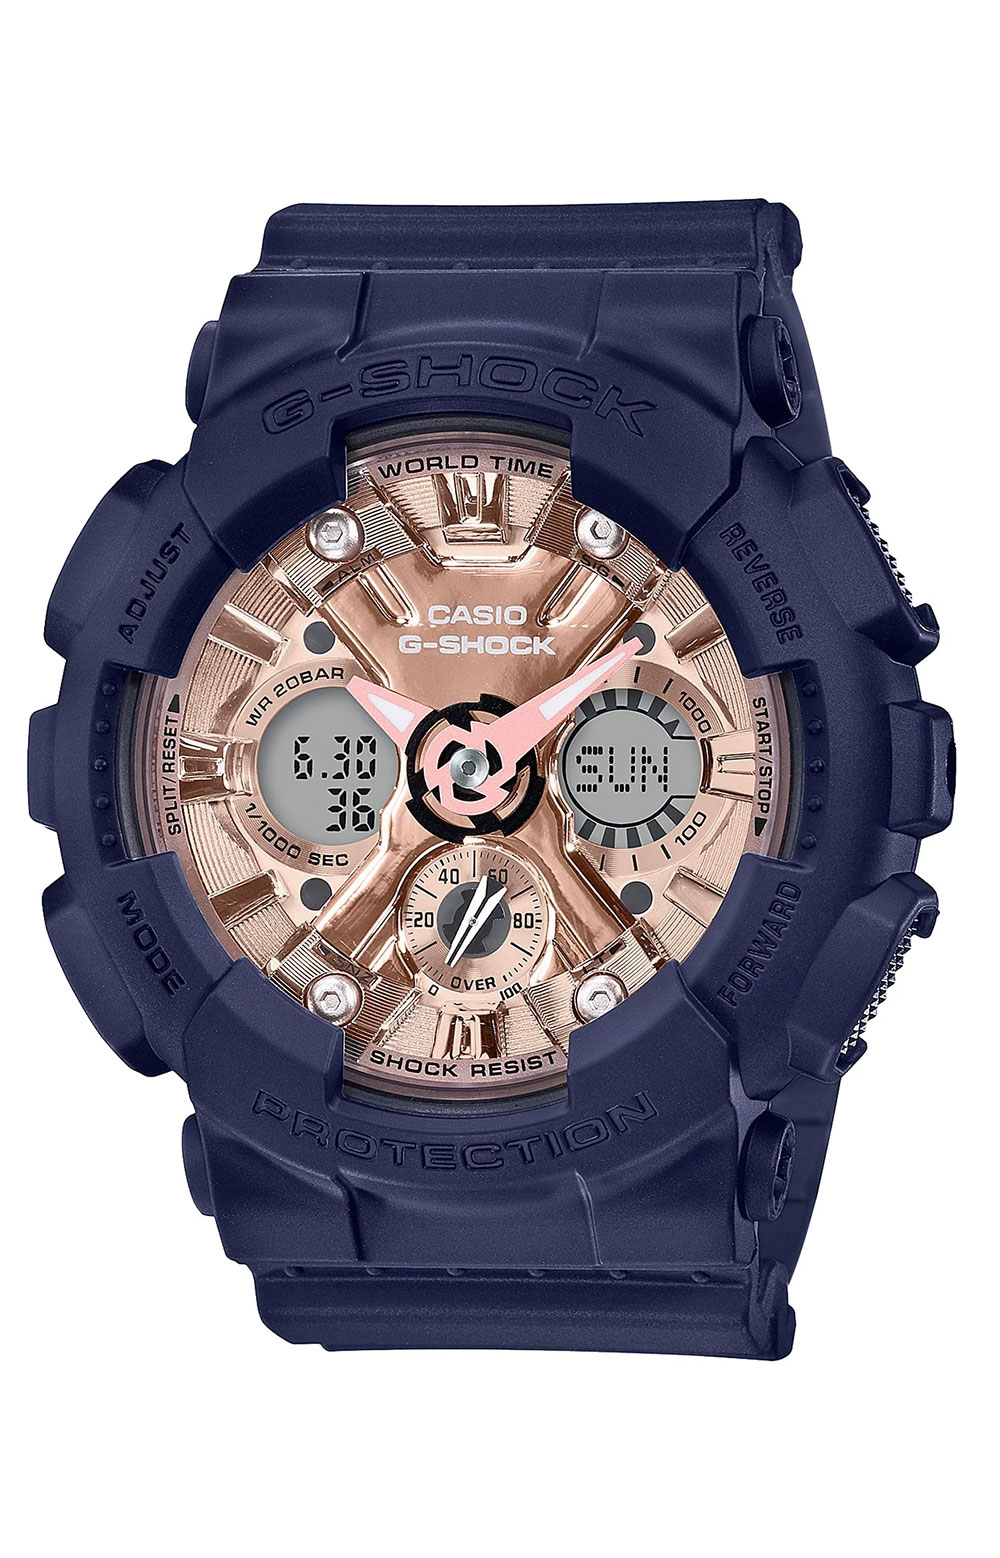 GMAS120MF-2A2 Watch - Navy